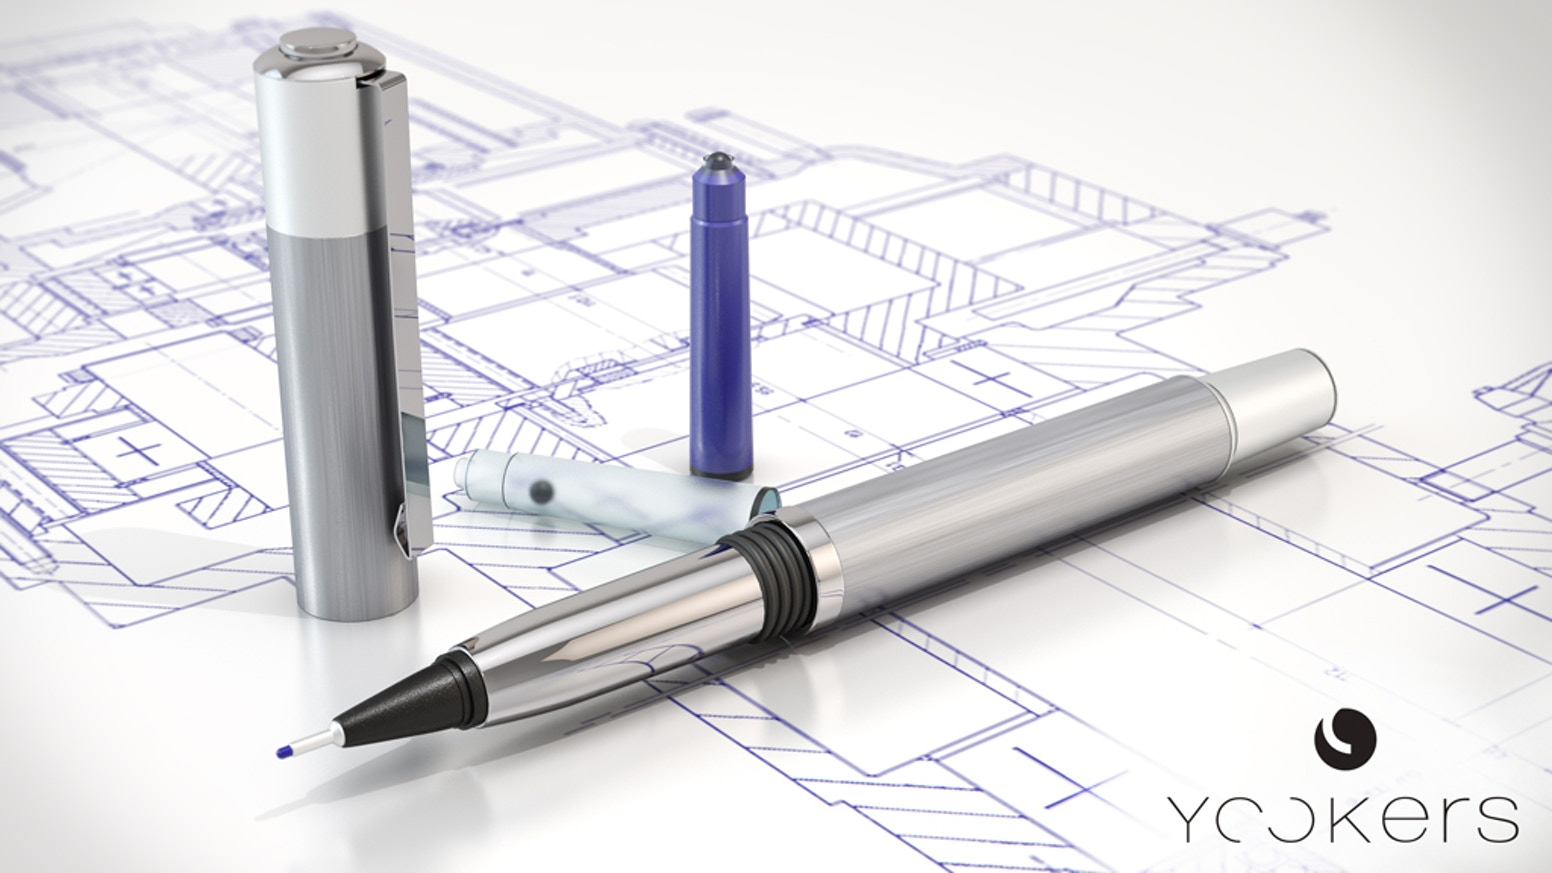 YOOKERS | First refillable felt-tip pen with cartridges is the top crowdfunding project launched today. YOOKERS | First refillable felt-tip pen with cartridges raised over $290804 from 592 backers. Other top projects include Hold the Line: The American Civil War, P.S. Poems, CREATIVE URBAN GARDENING PROJECTS...